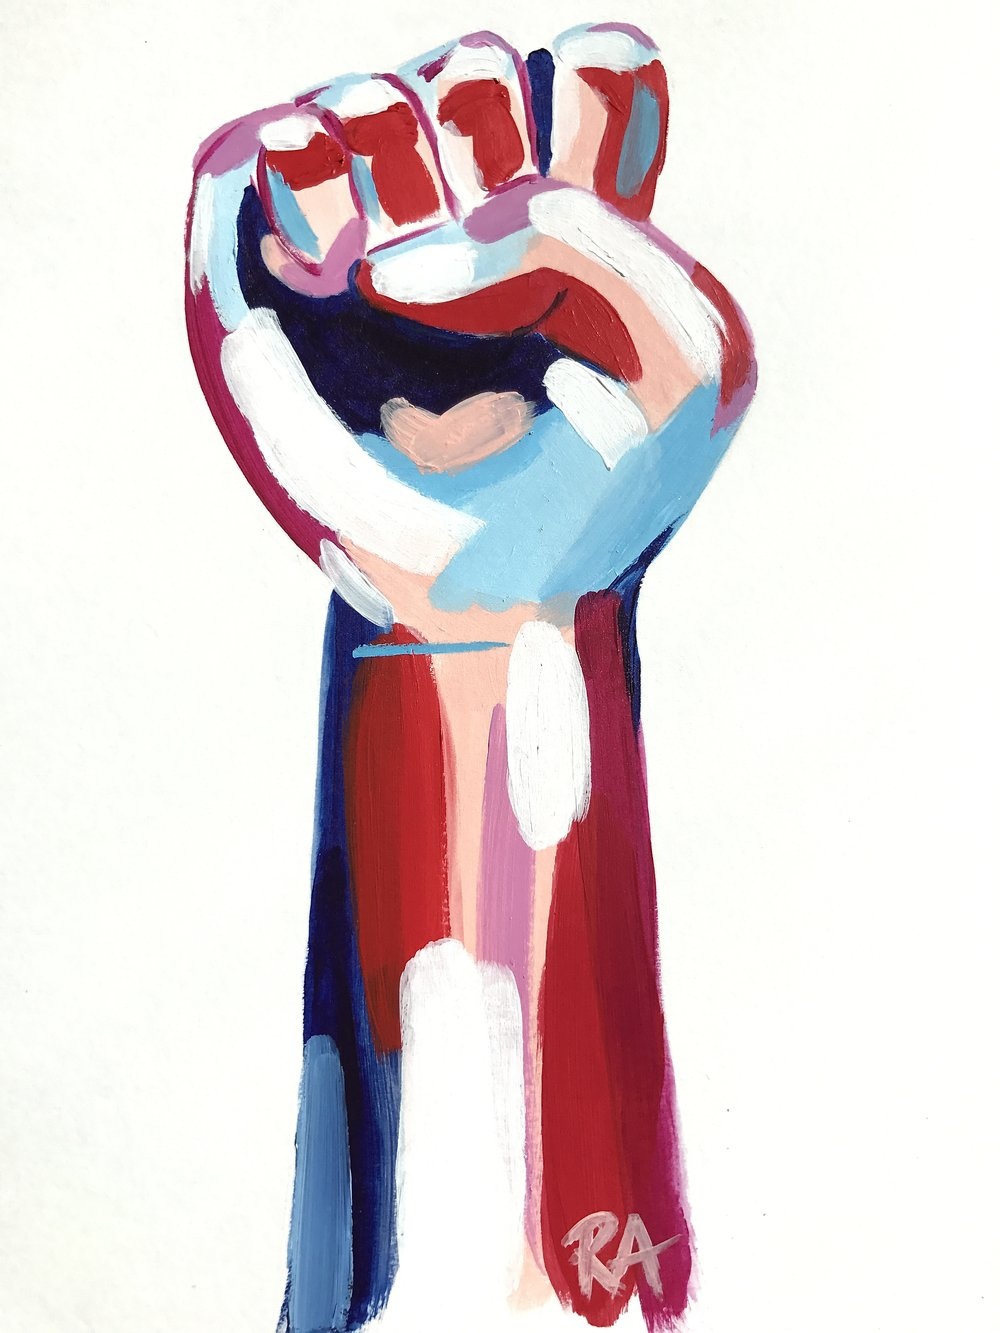 (SOLD) Women's March Fist, 2017